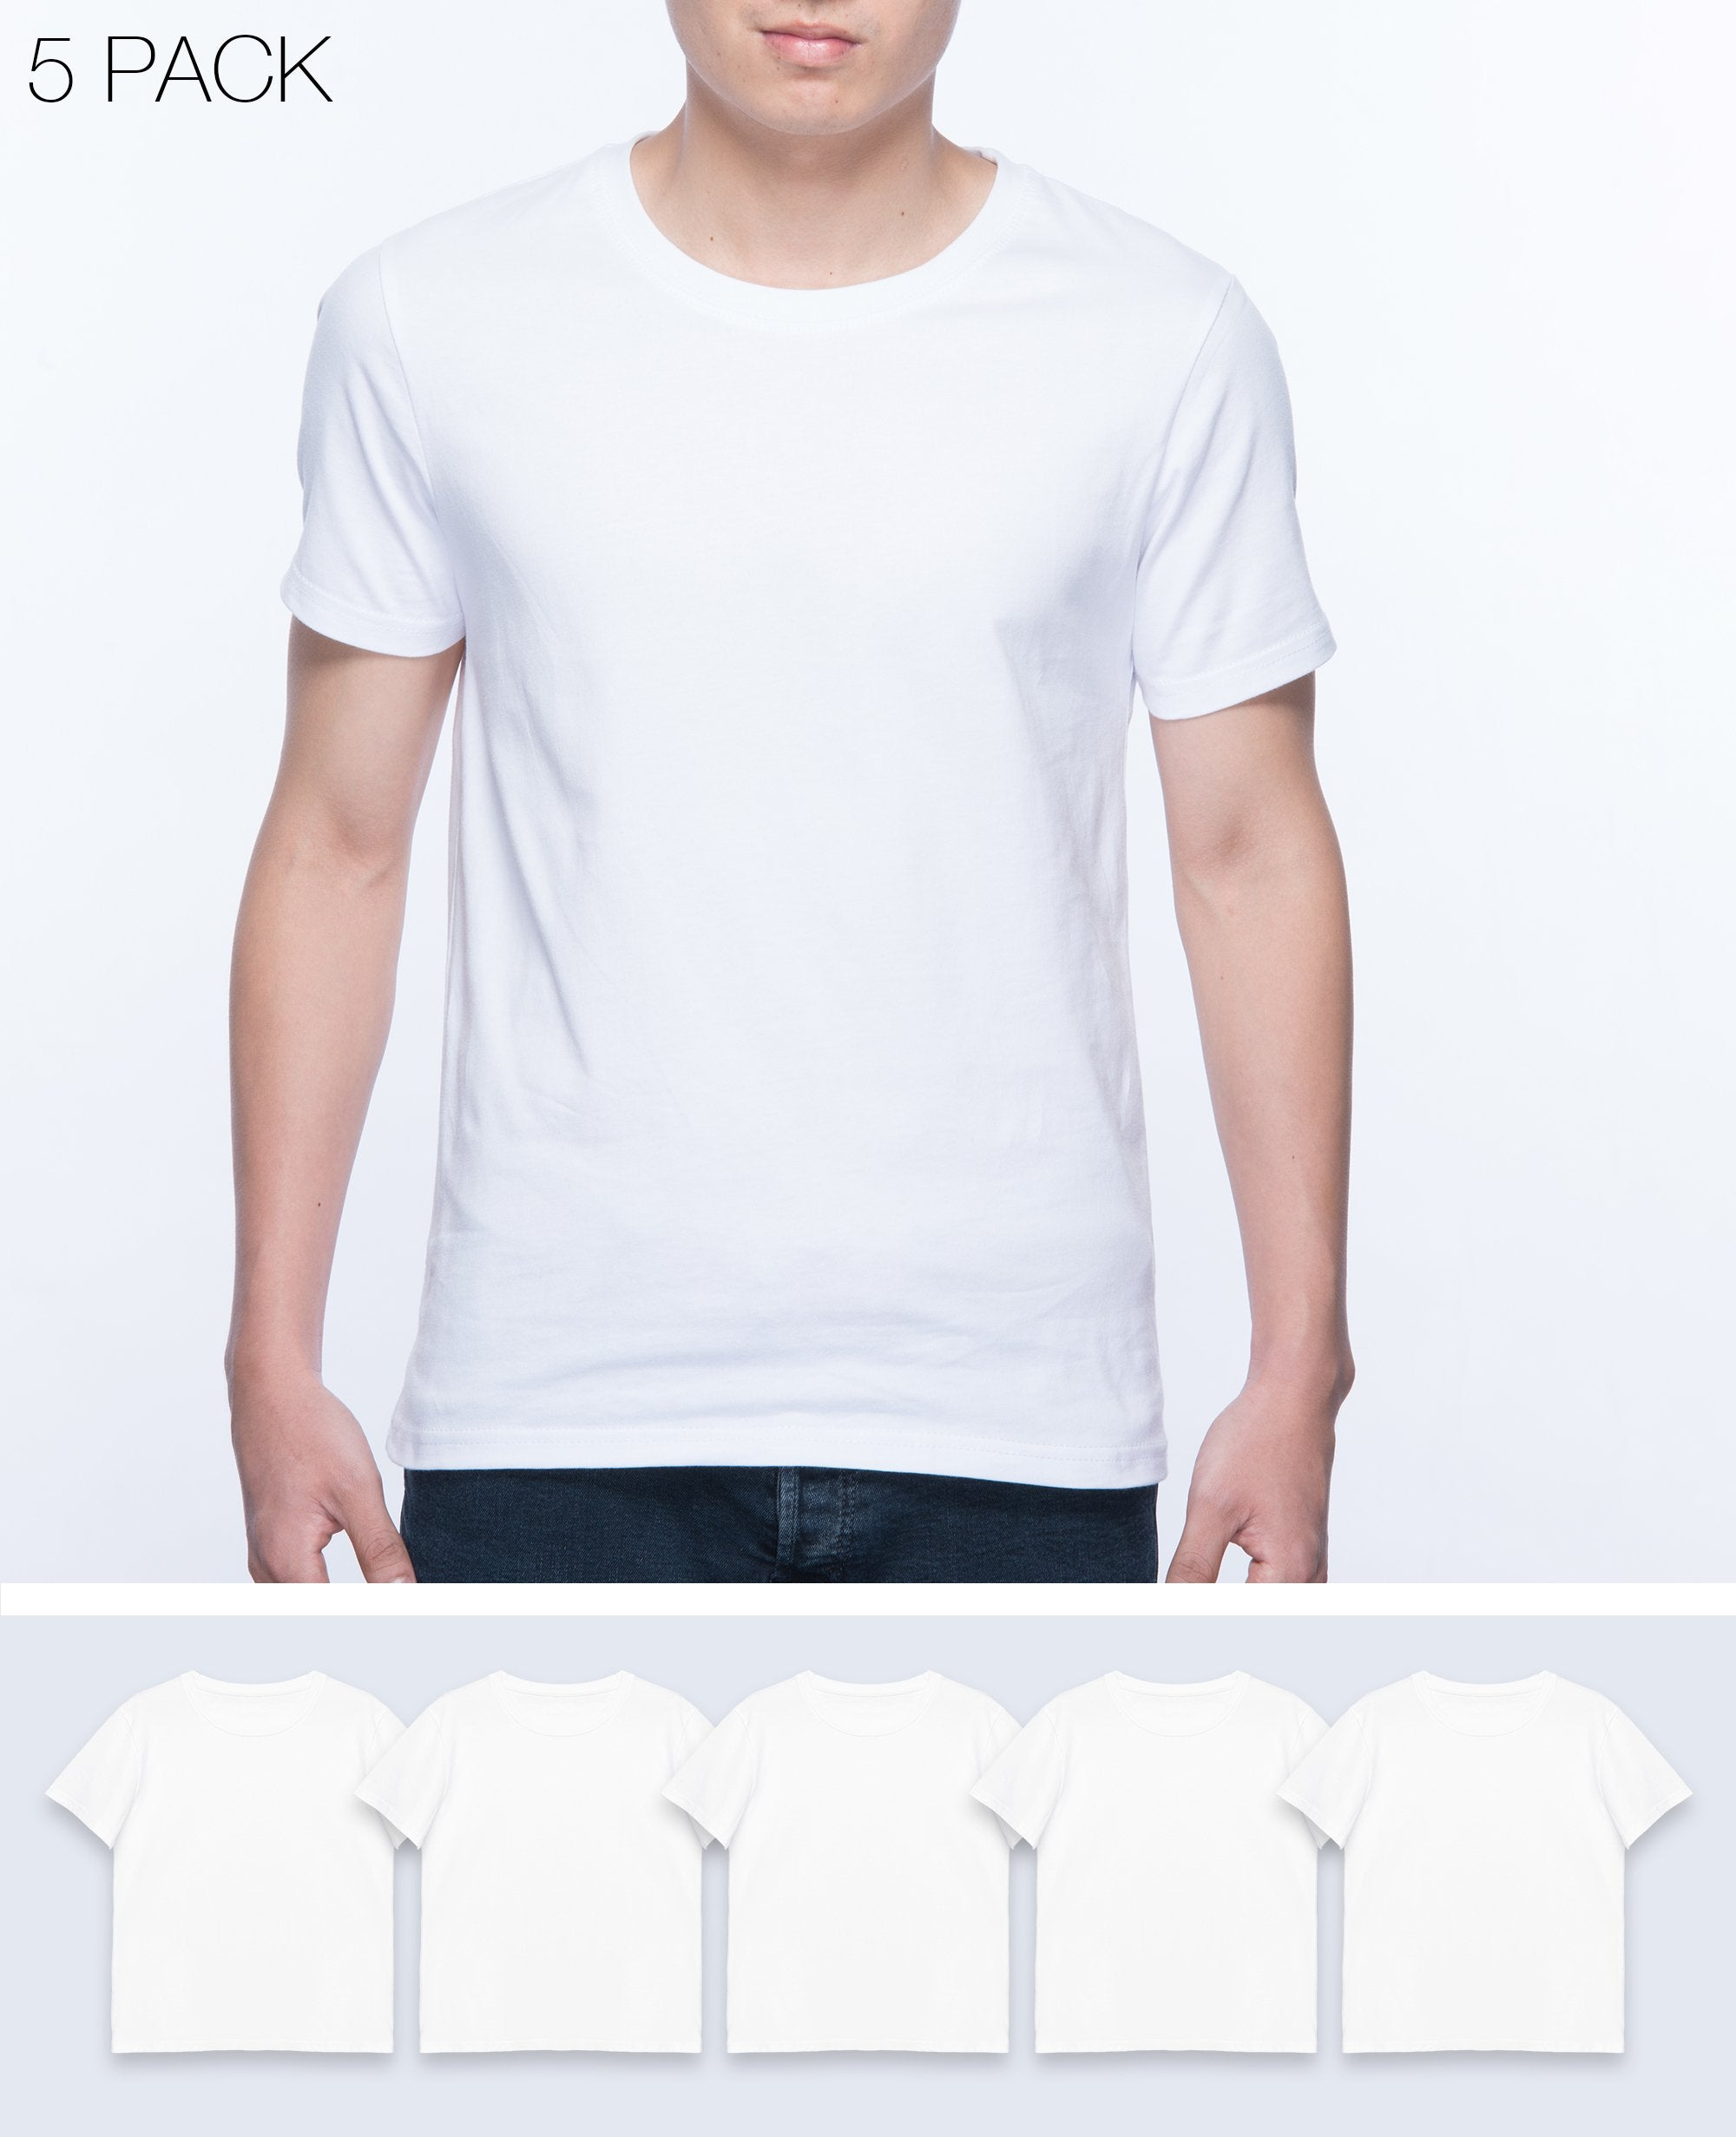 Basic T-shirt Men in White 5 pack - T-Shirts - BRANMA - BRANMA